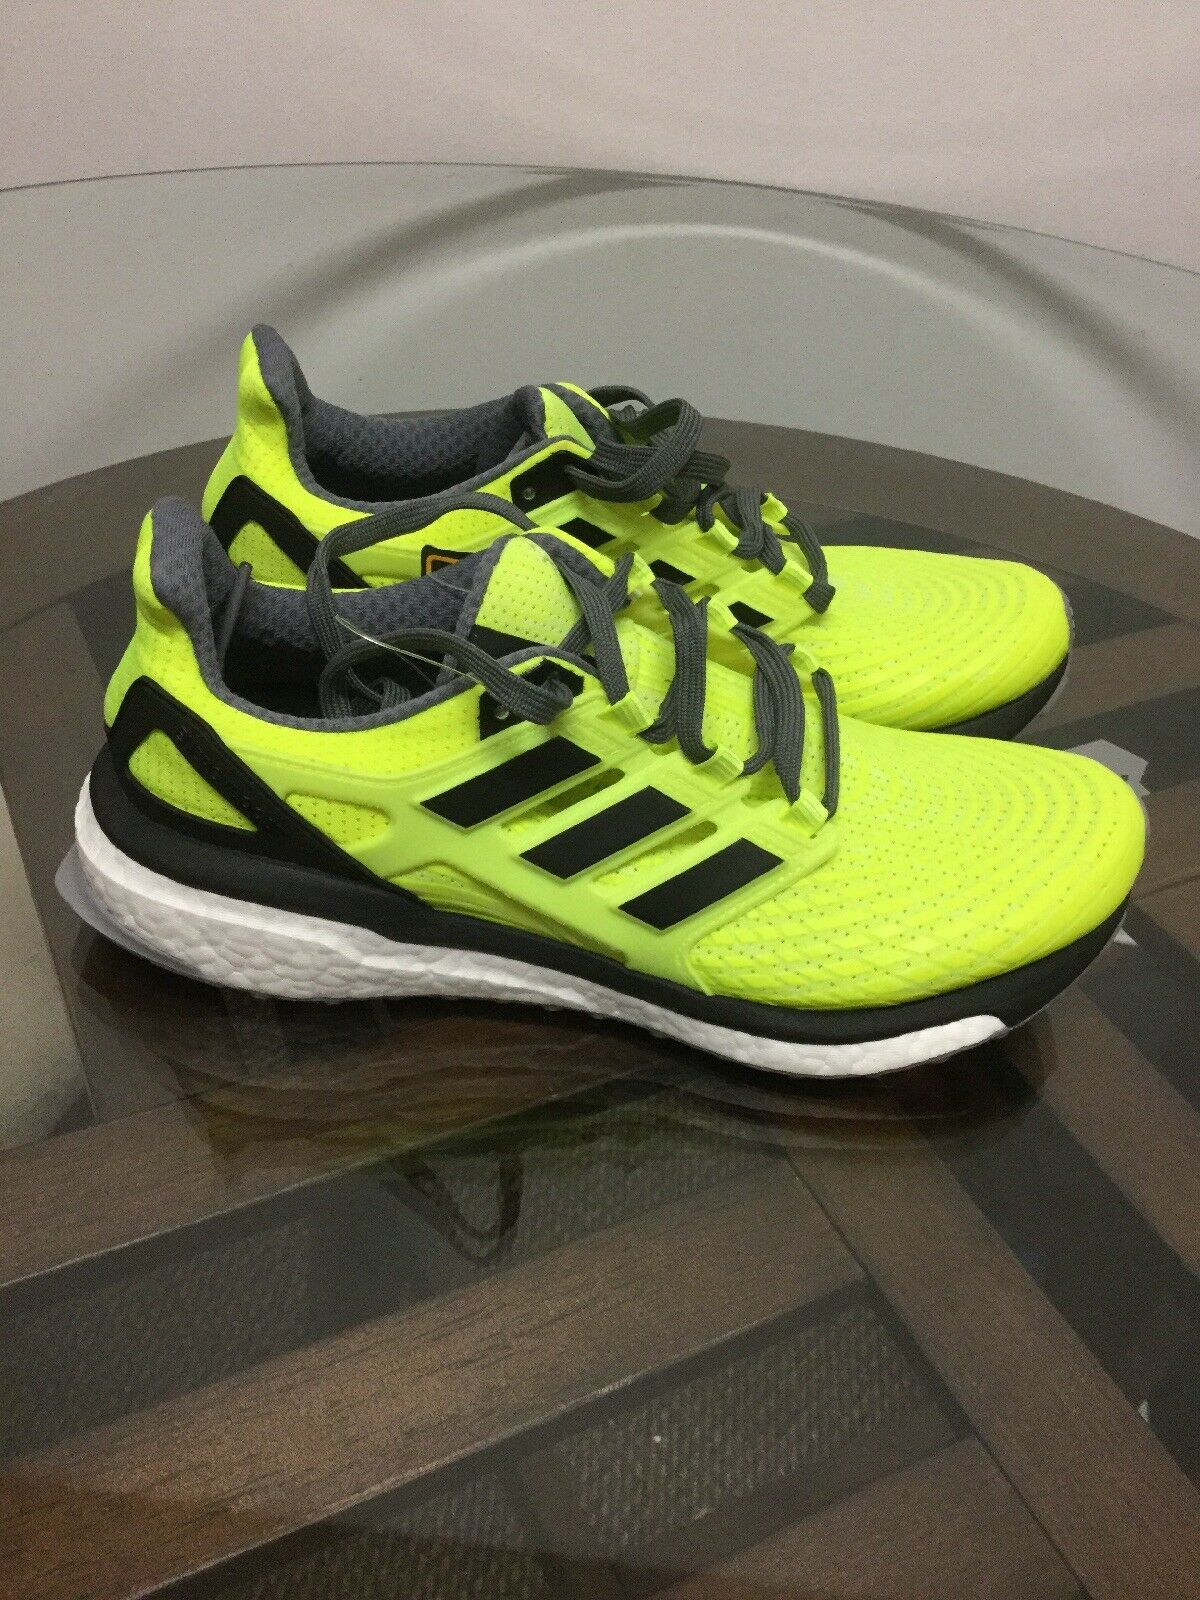 [BB3455] Mens Adidas Energy Boost Running shoes Men's Size 8.5 New Without Box